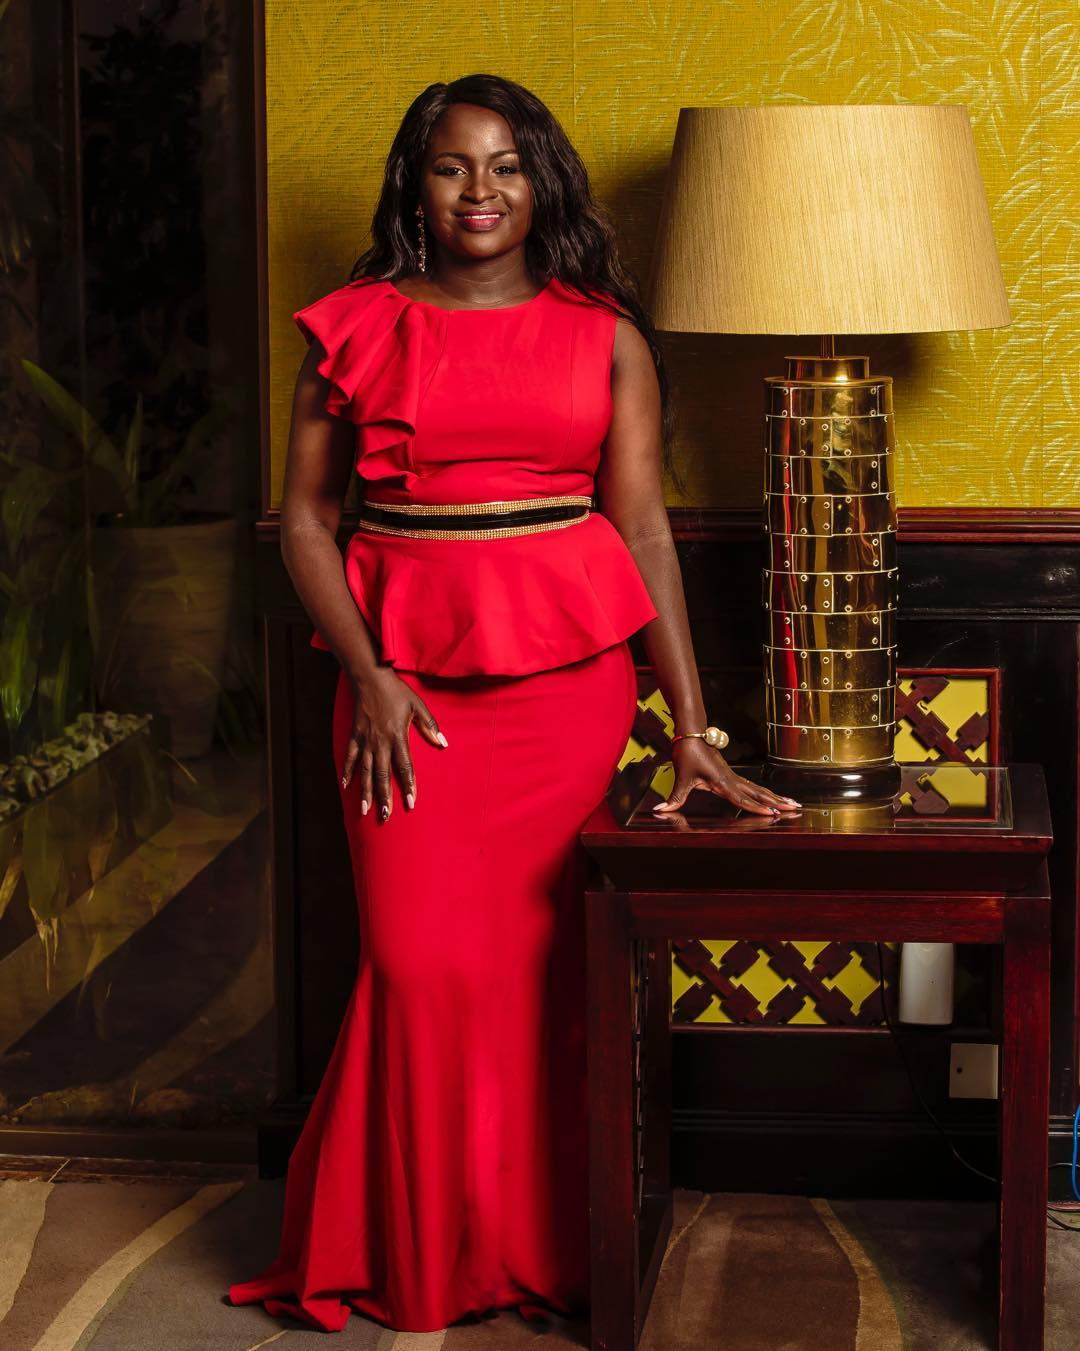 Nicah The Queen And Kush Tracey Take Lessons Proof Mercy Masika Is The Best Dressed -7461